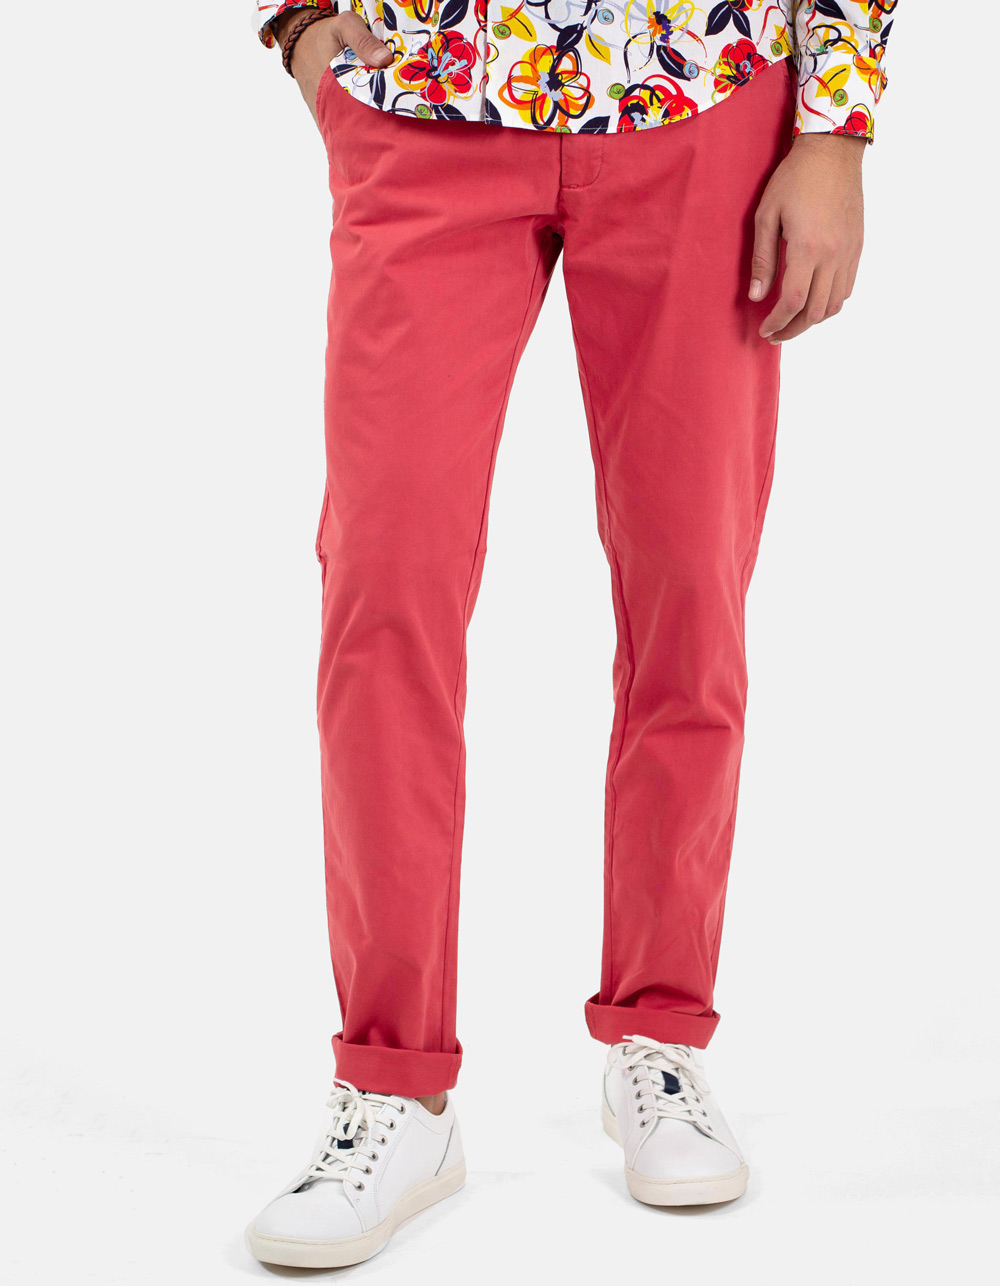 Coral chinos trousers